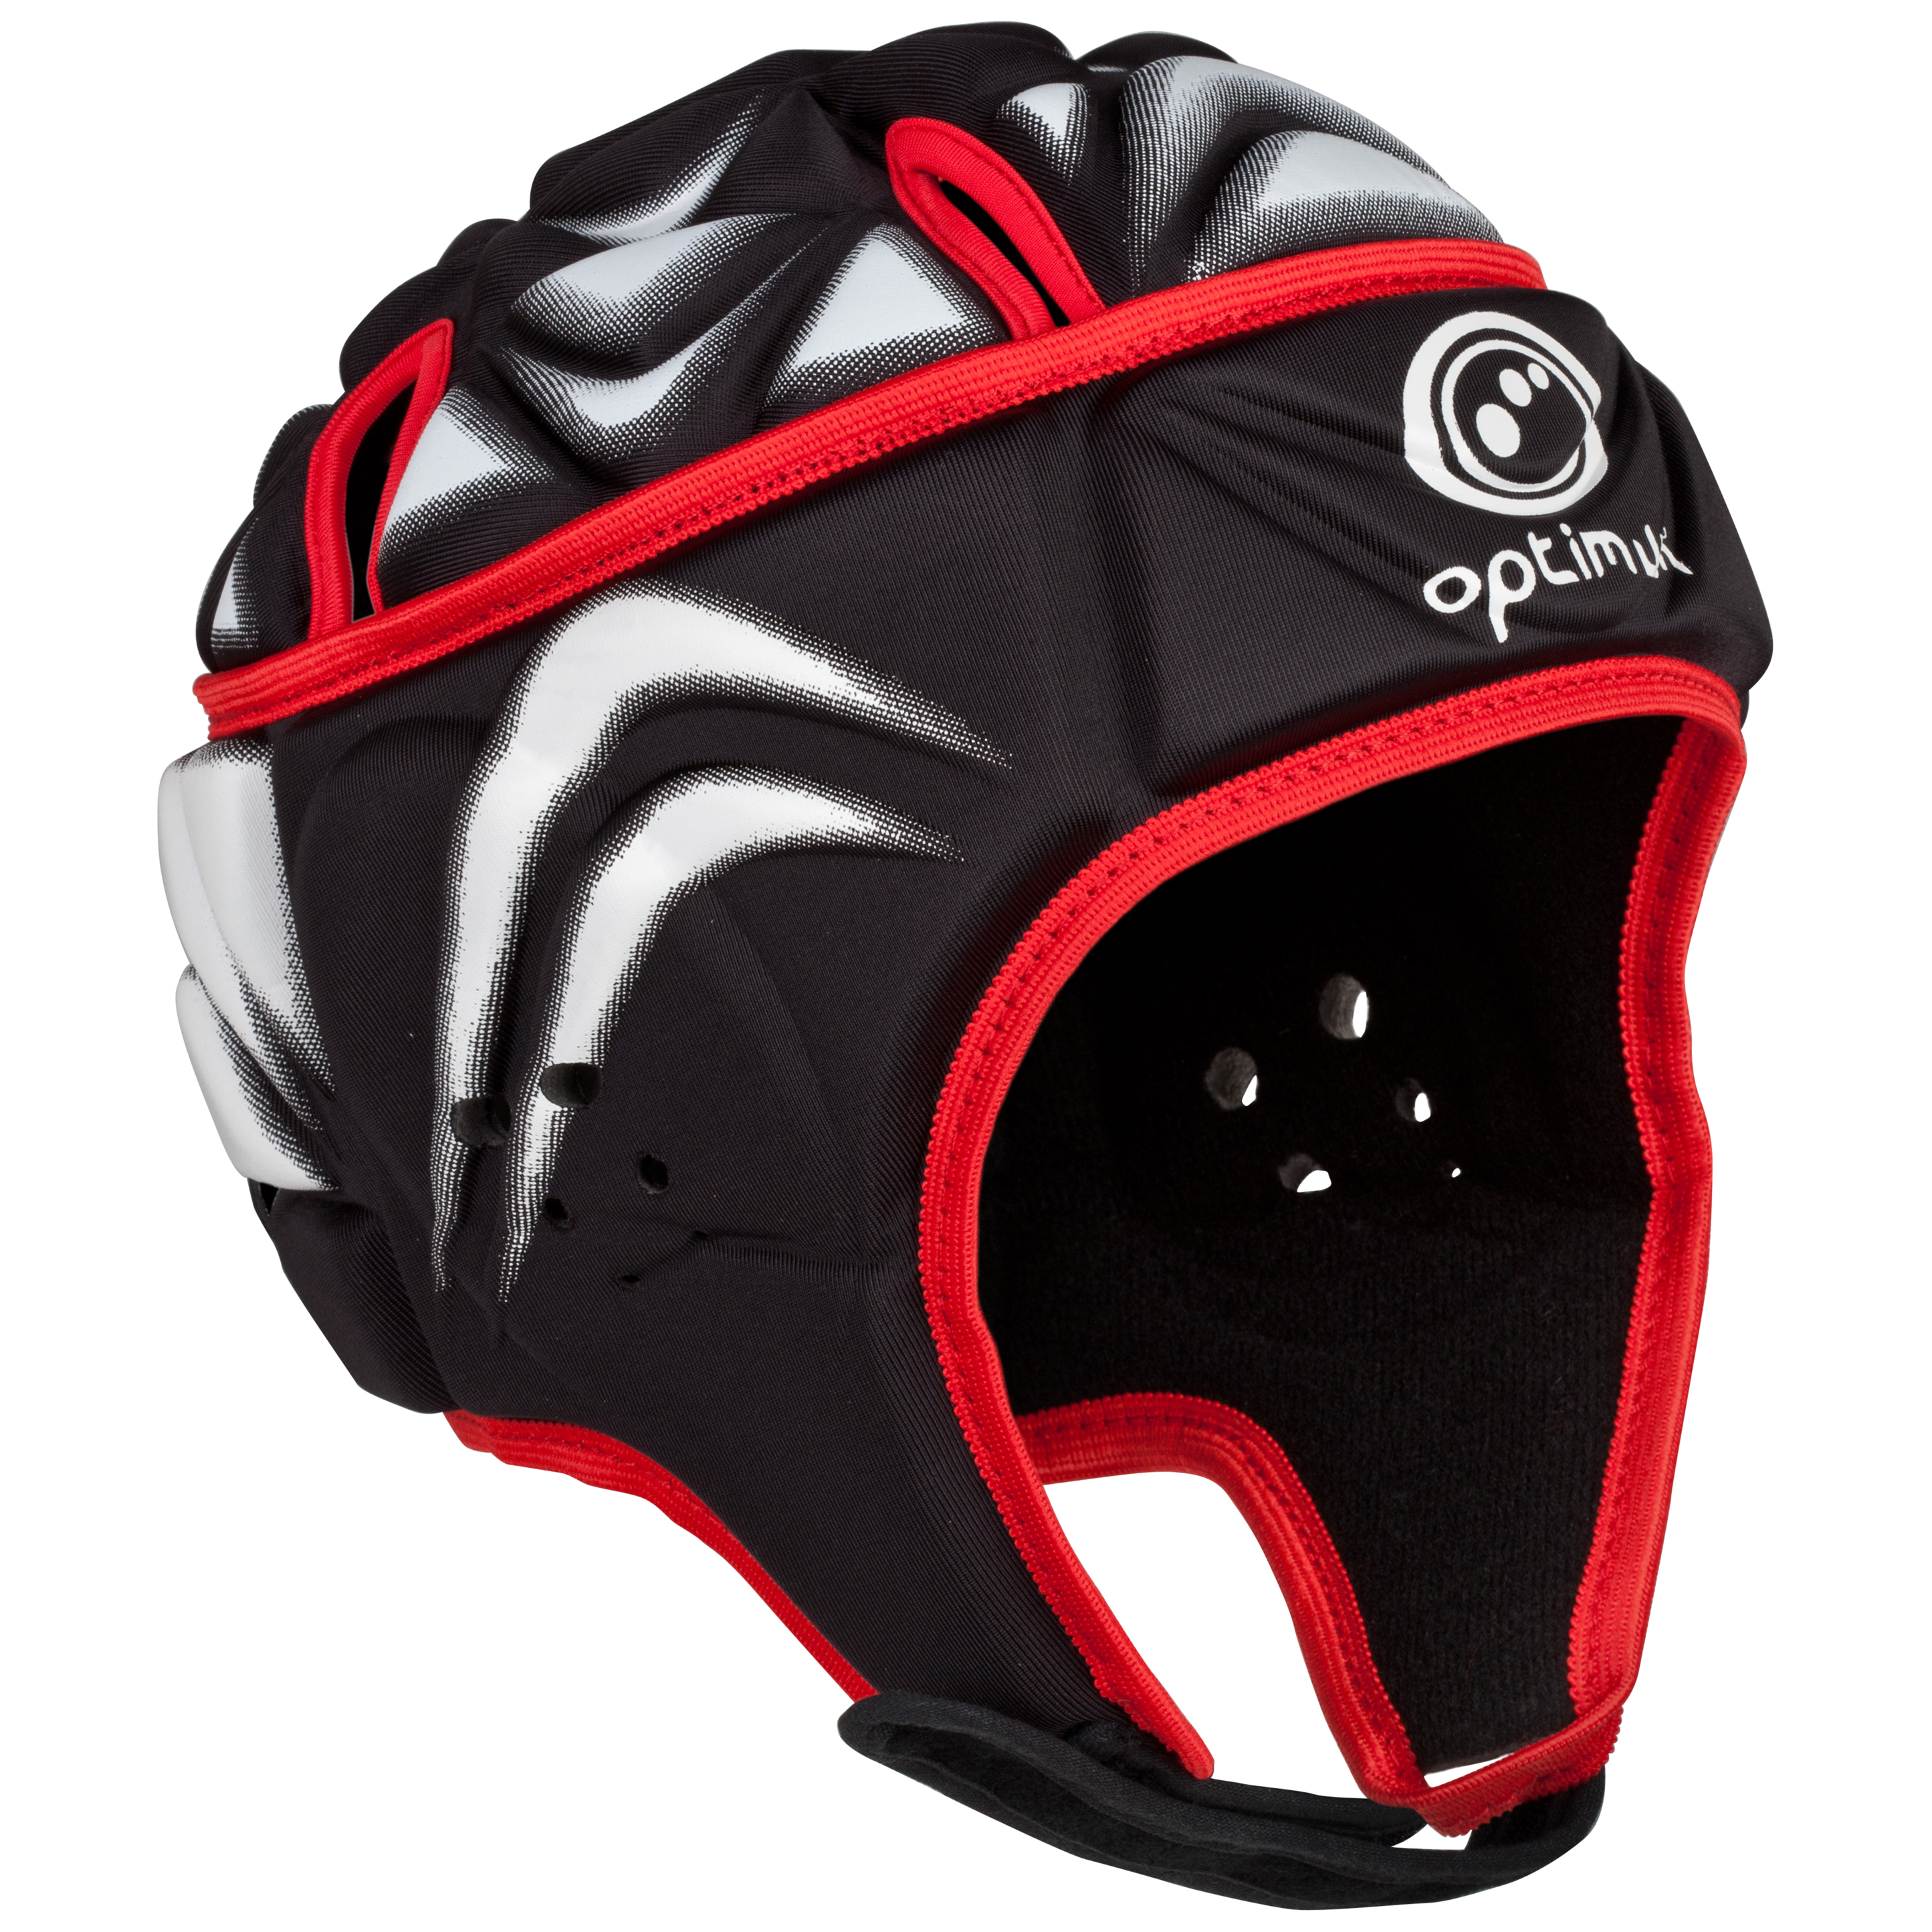 Optimum Rugby Blitz Extreme Headguard - Black/Red